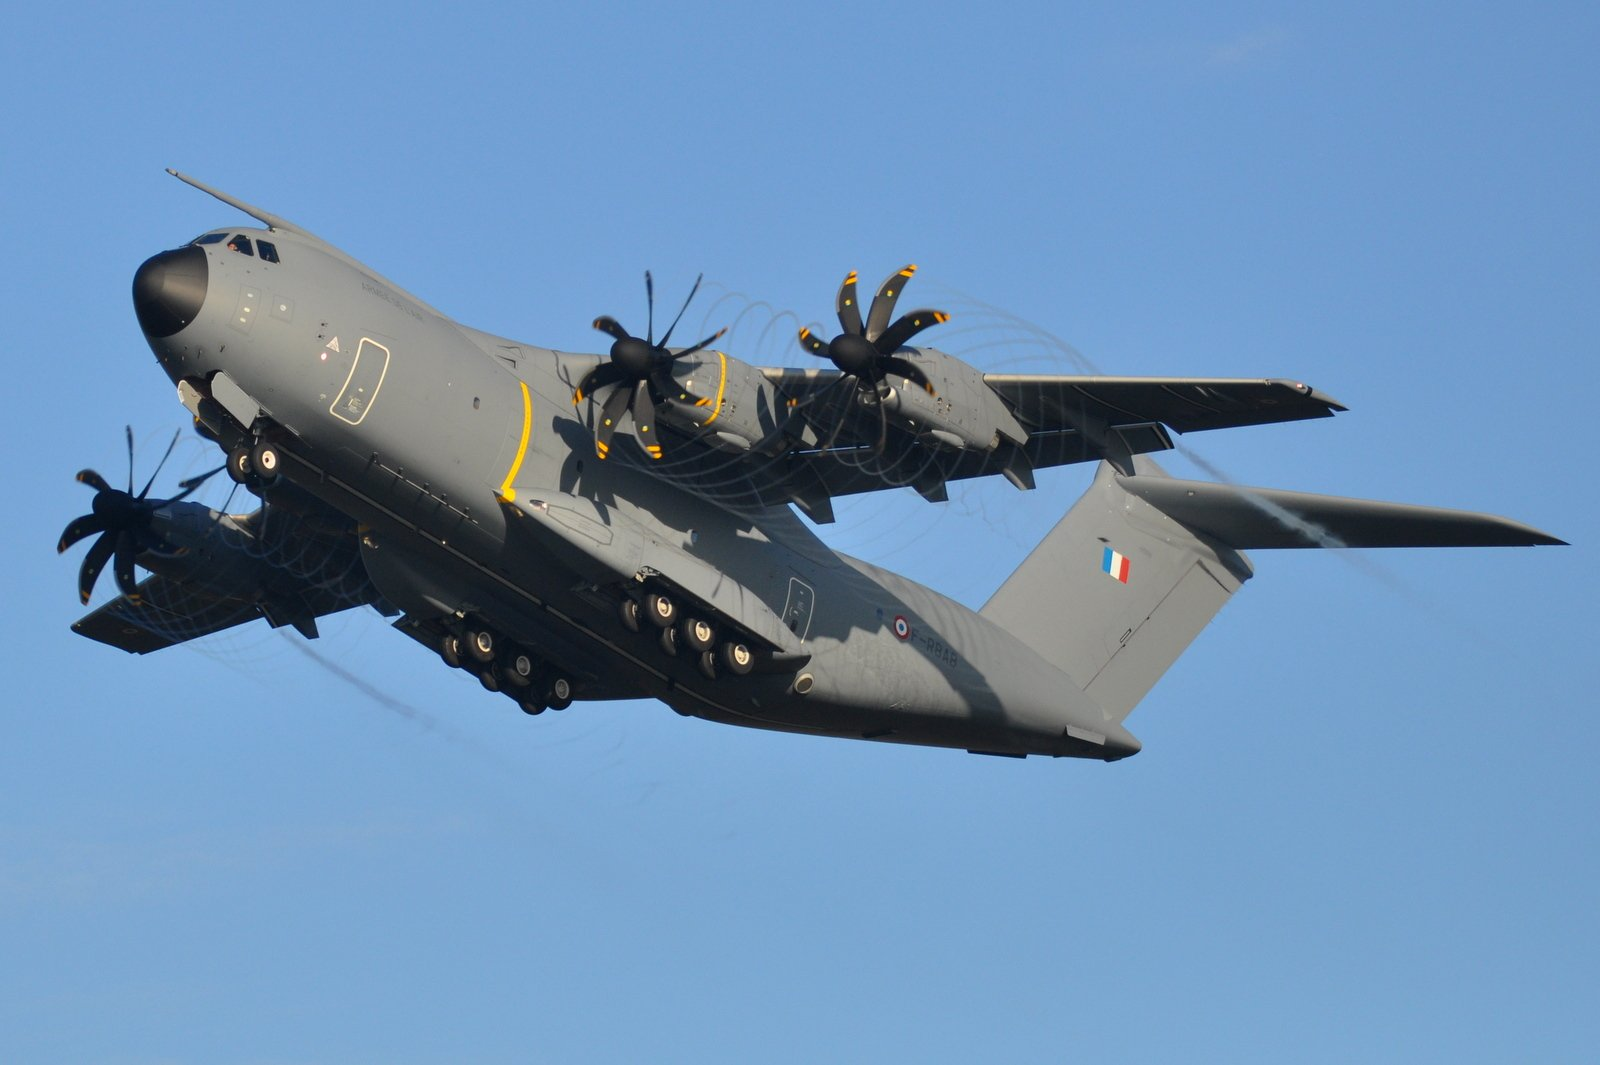 Airbus A400M Atlas 2013 aircrafts transport Military troups Allemagne France Espagne Royaume-Uni Turquie Belgique Luxembourg Malaisie europe